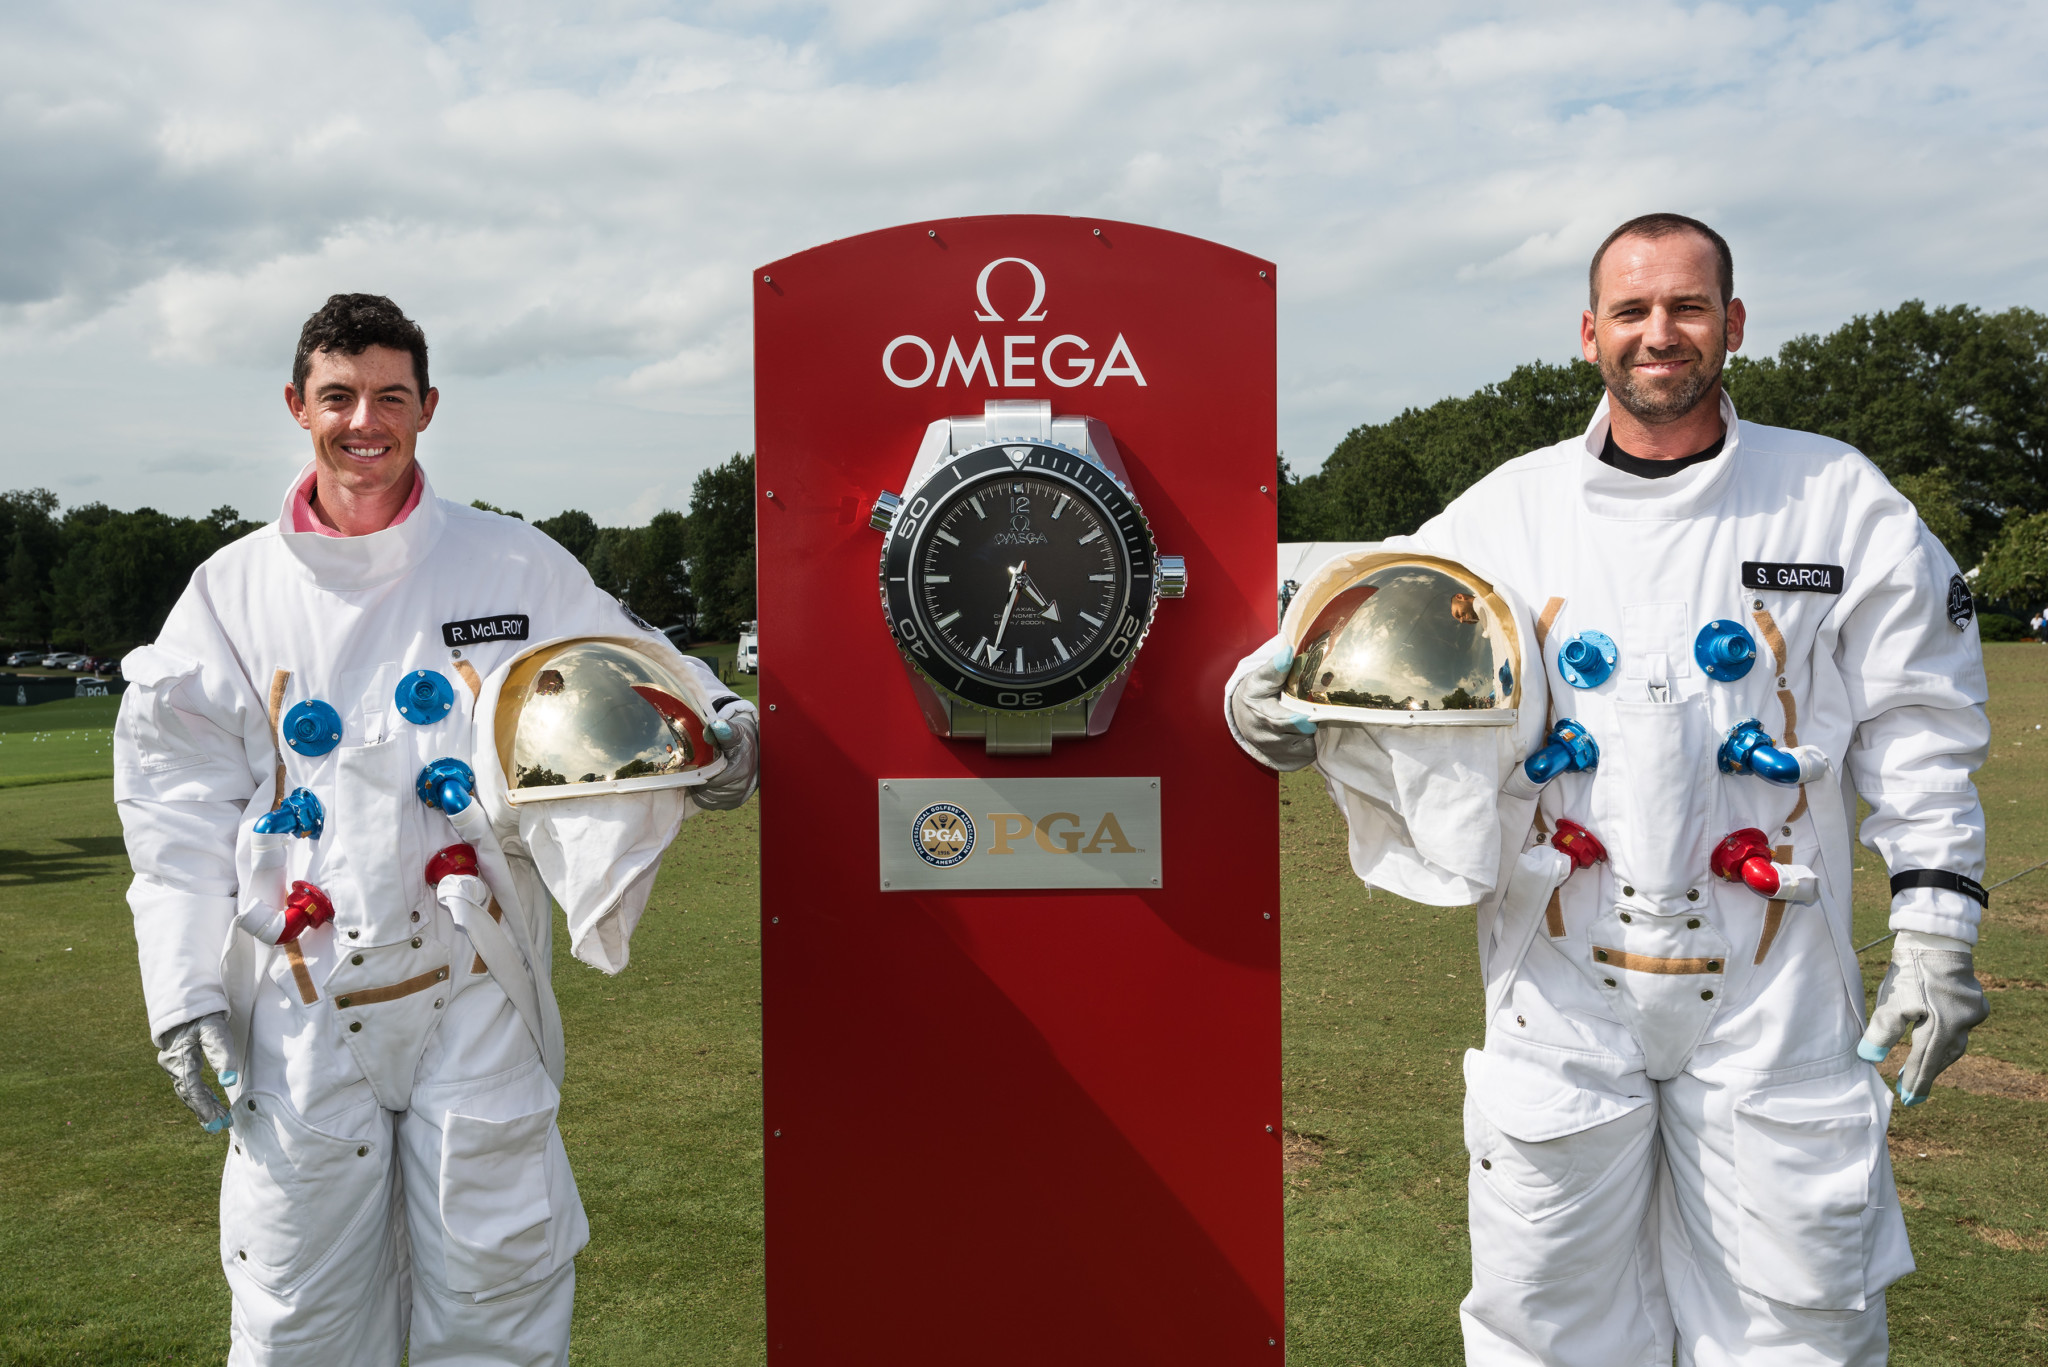 Rory McIlroy & Sergio Garcia in Astronaut Uniforms - OMEGA